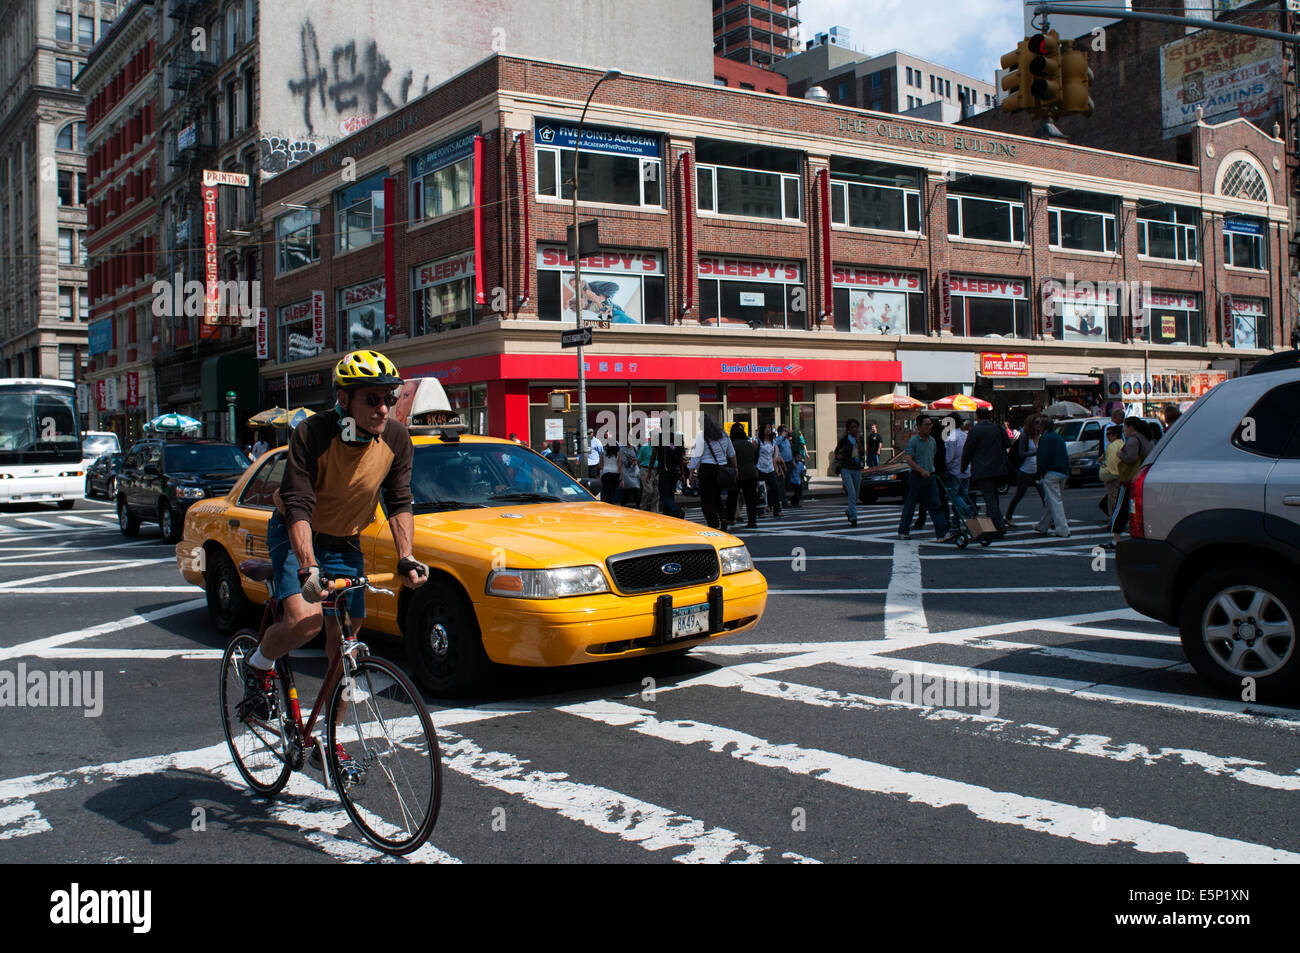 Man riding bicycle on city street. bicycling, bike, biker, biking, blurry, bringing, cab, citylife, color, colour, - Stock Image